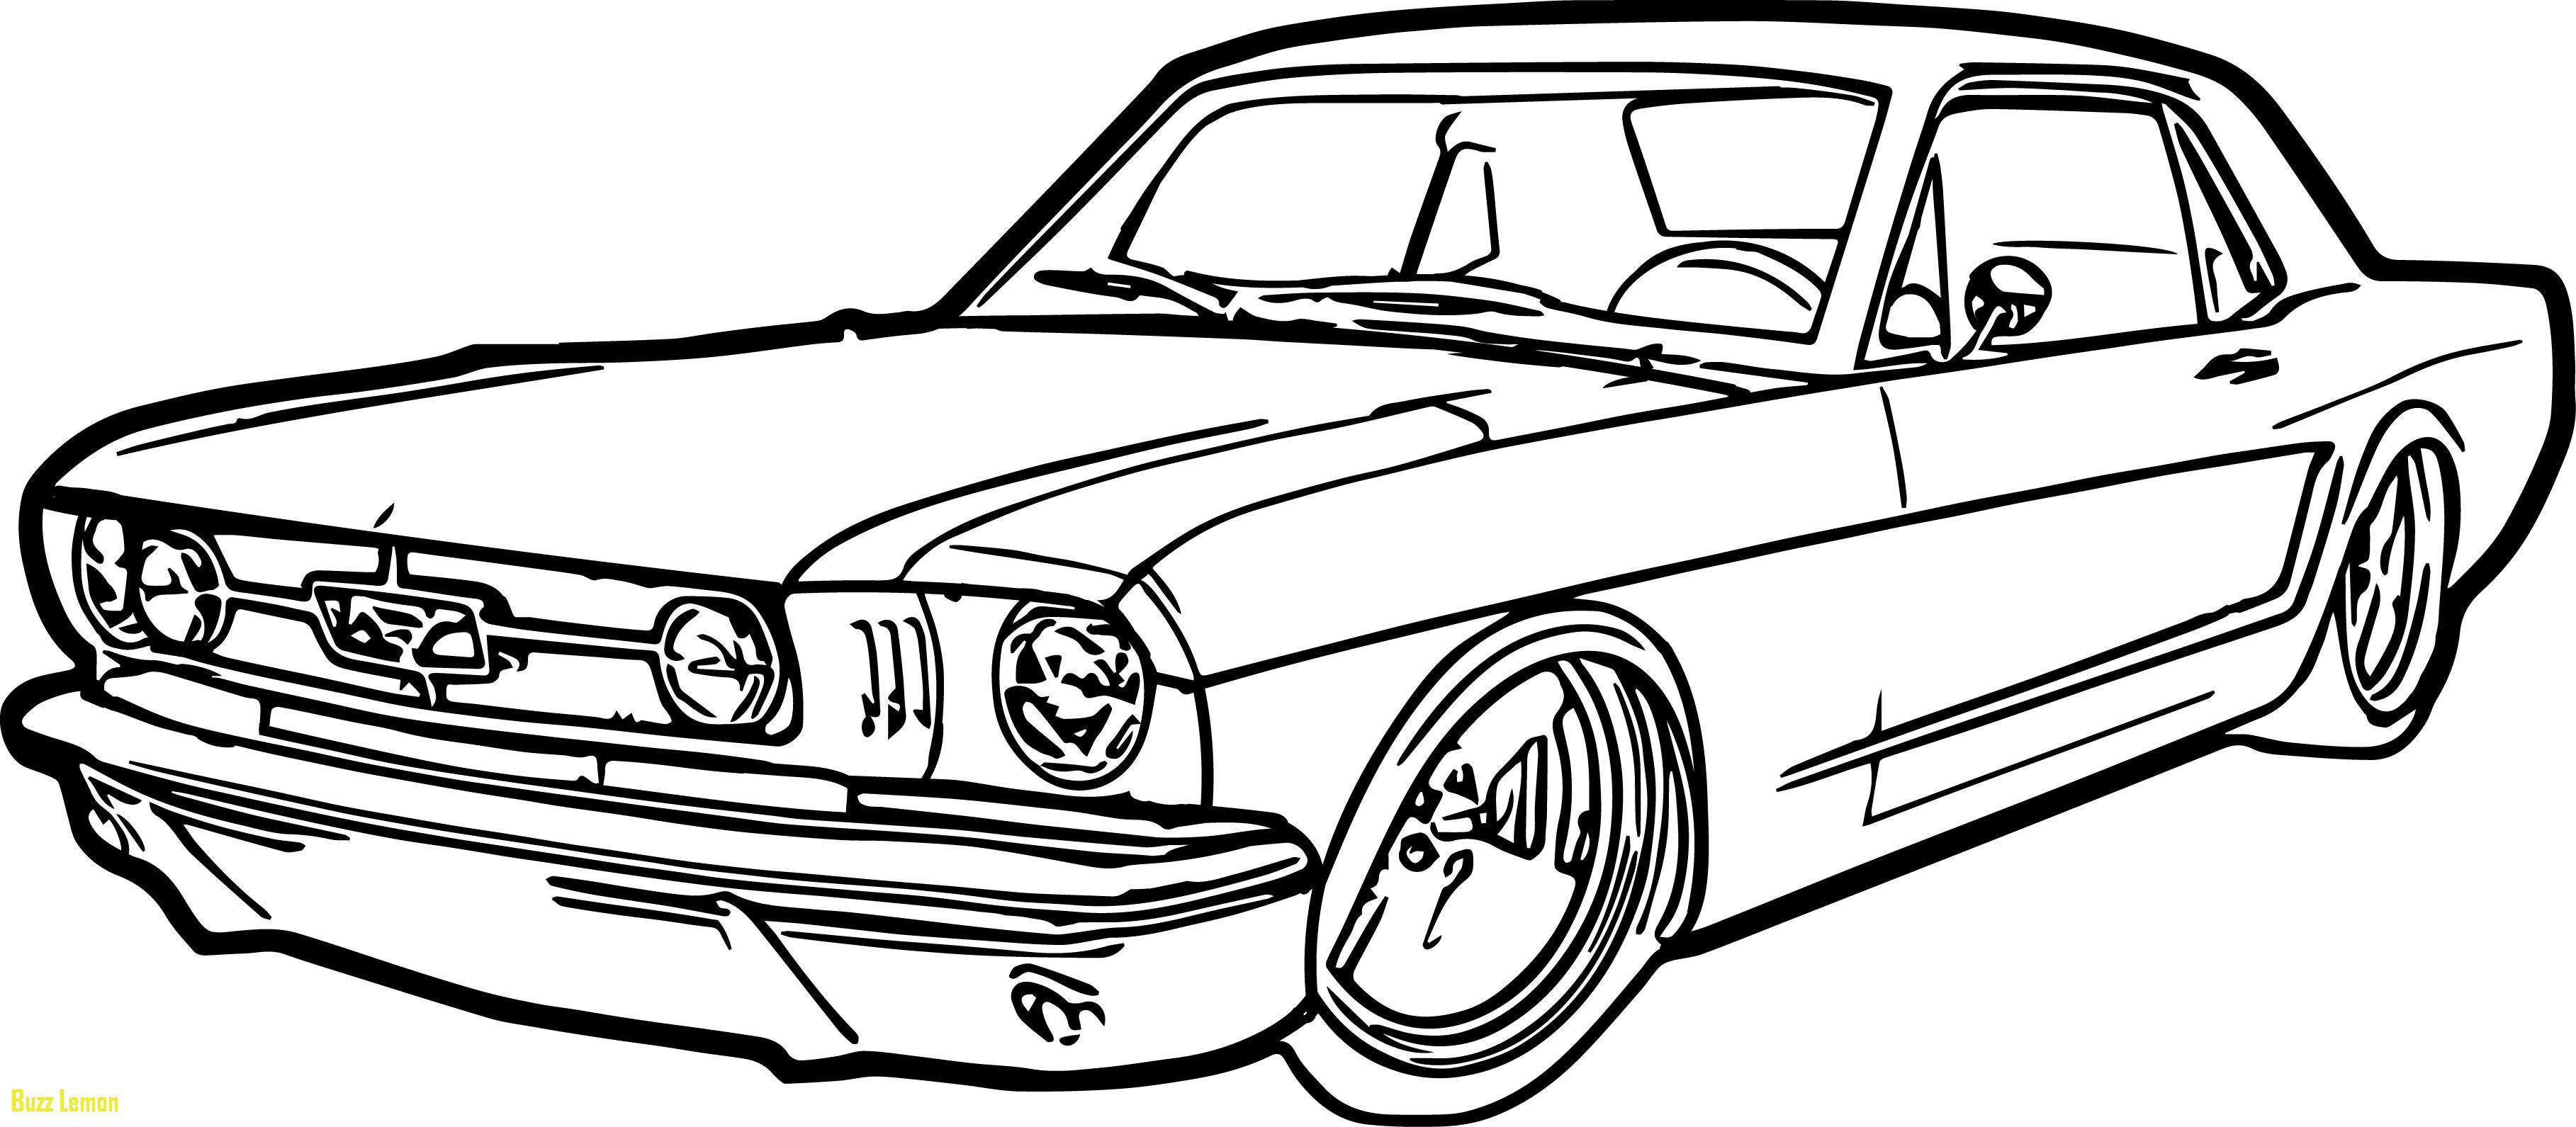 cool car colouring pages 13 pics of car cool lamborghini coloring pages how to cool pages colouring car